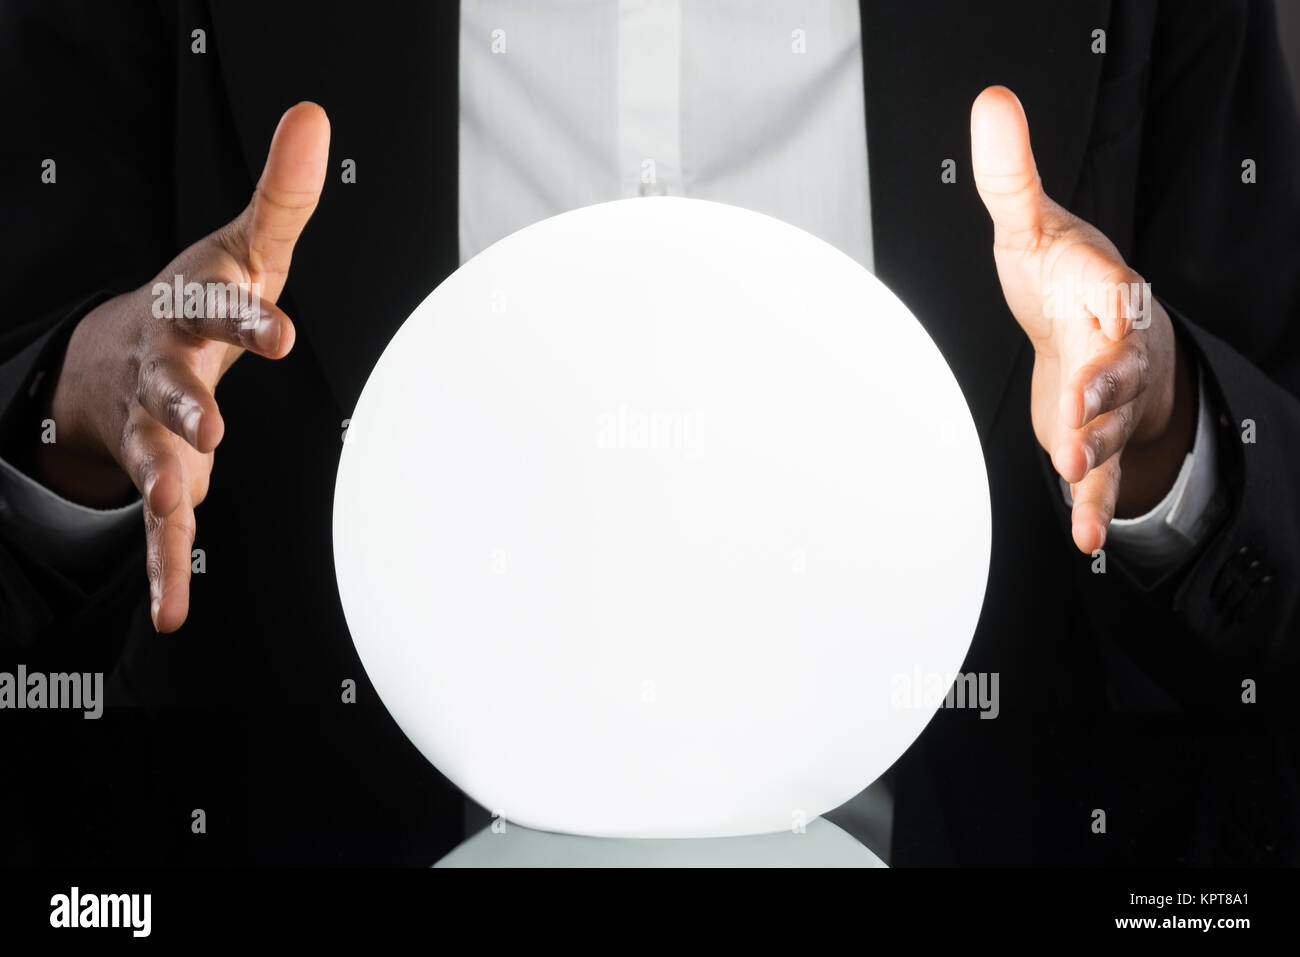 Businessperson Predicting Future With Crystal Ball - Stock Image